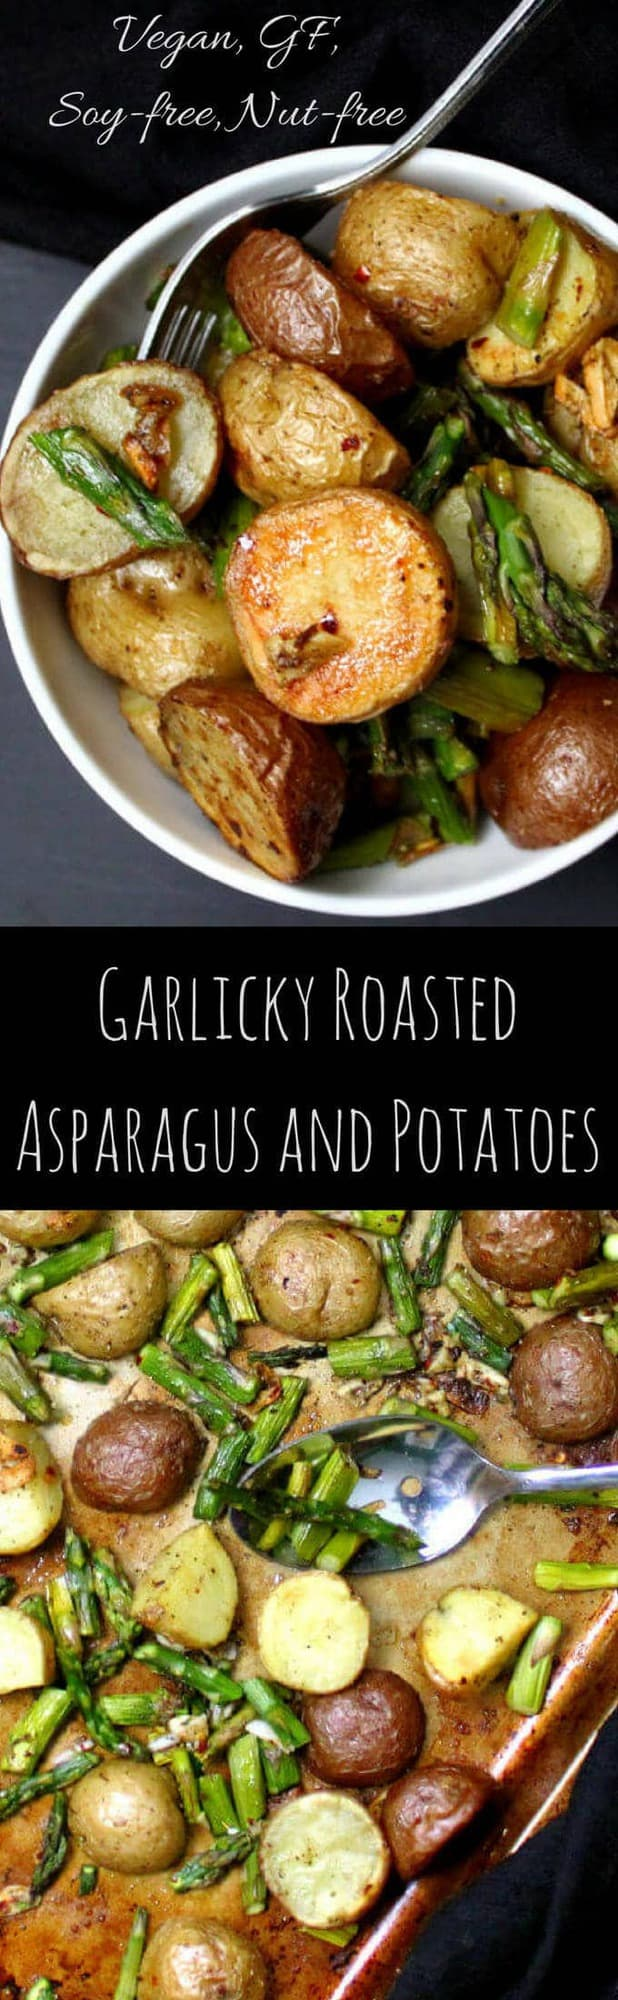 """Pin image of Garlicky Roasted Asparagus and Potatoes with inlay that reads """"garlicky roasted asparagus and potatoes, vegan, gf, soy-free and nut-free"""""""